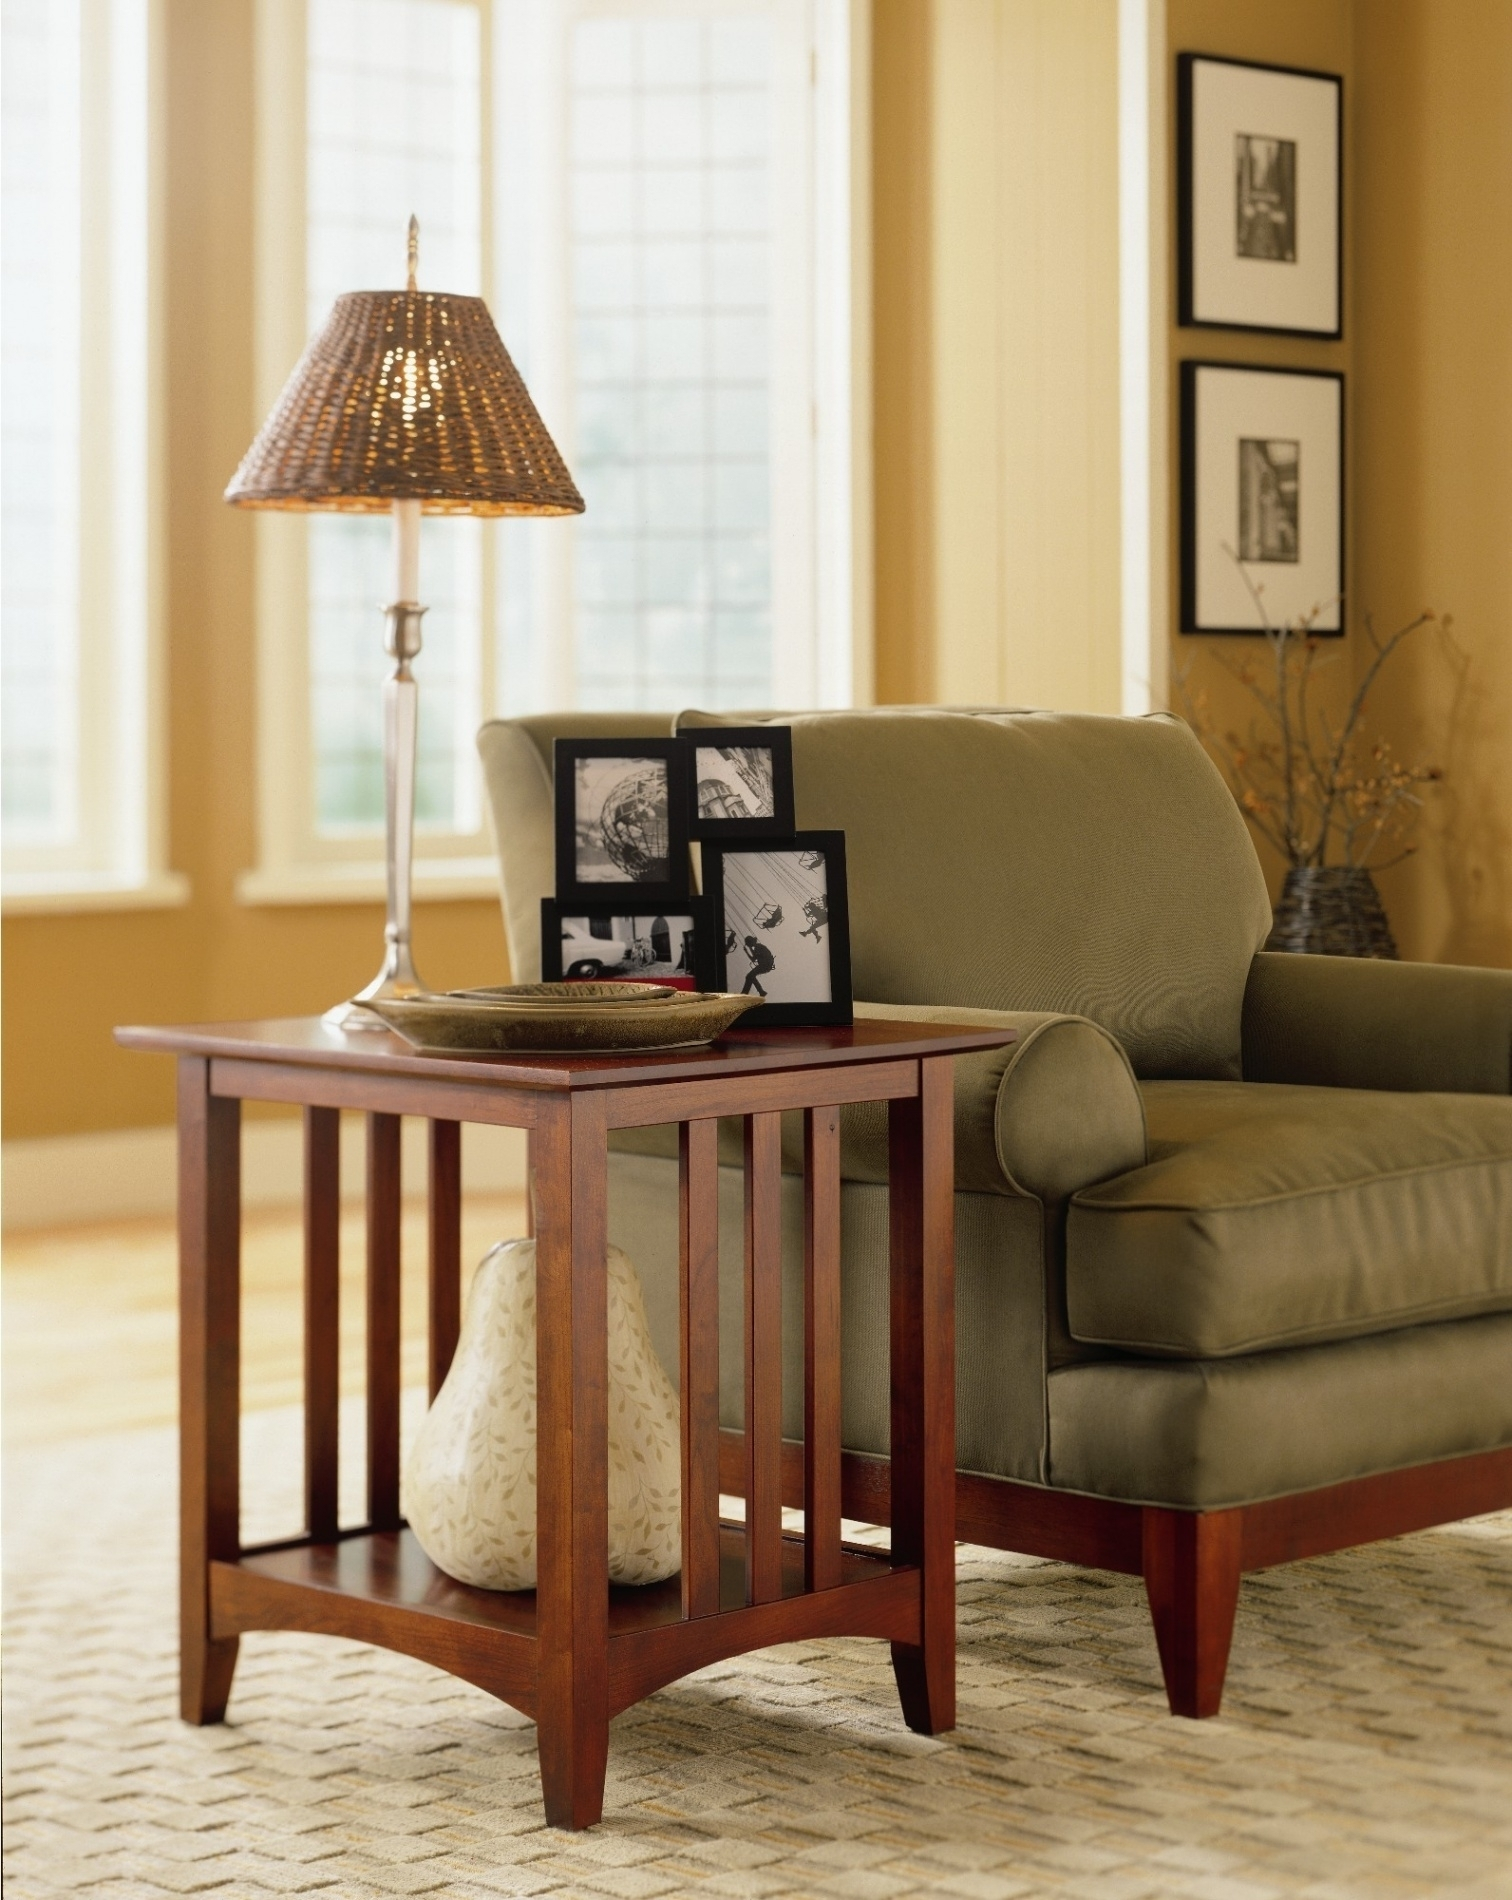 Preferred End Table Lamps For Living Room Home Combo Within